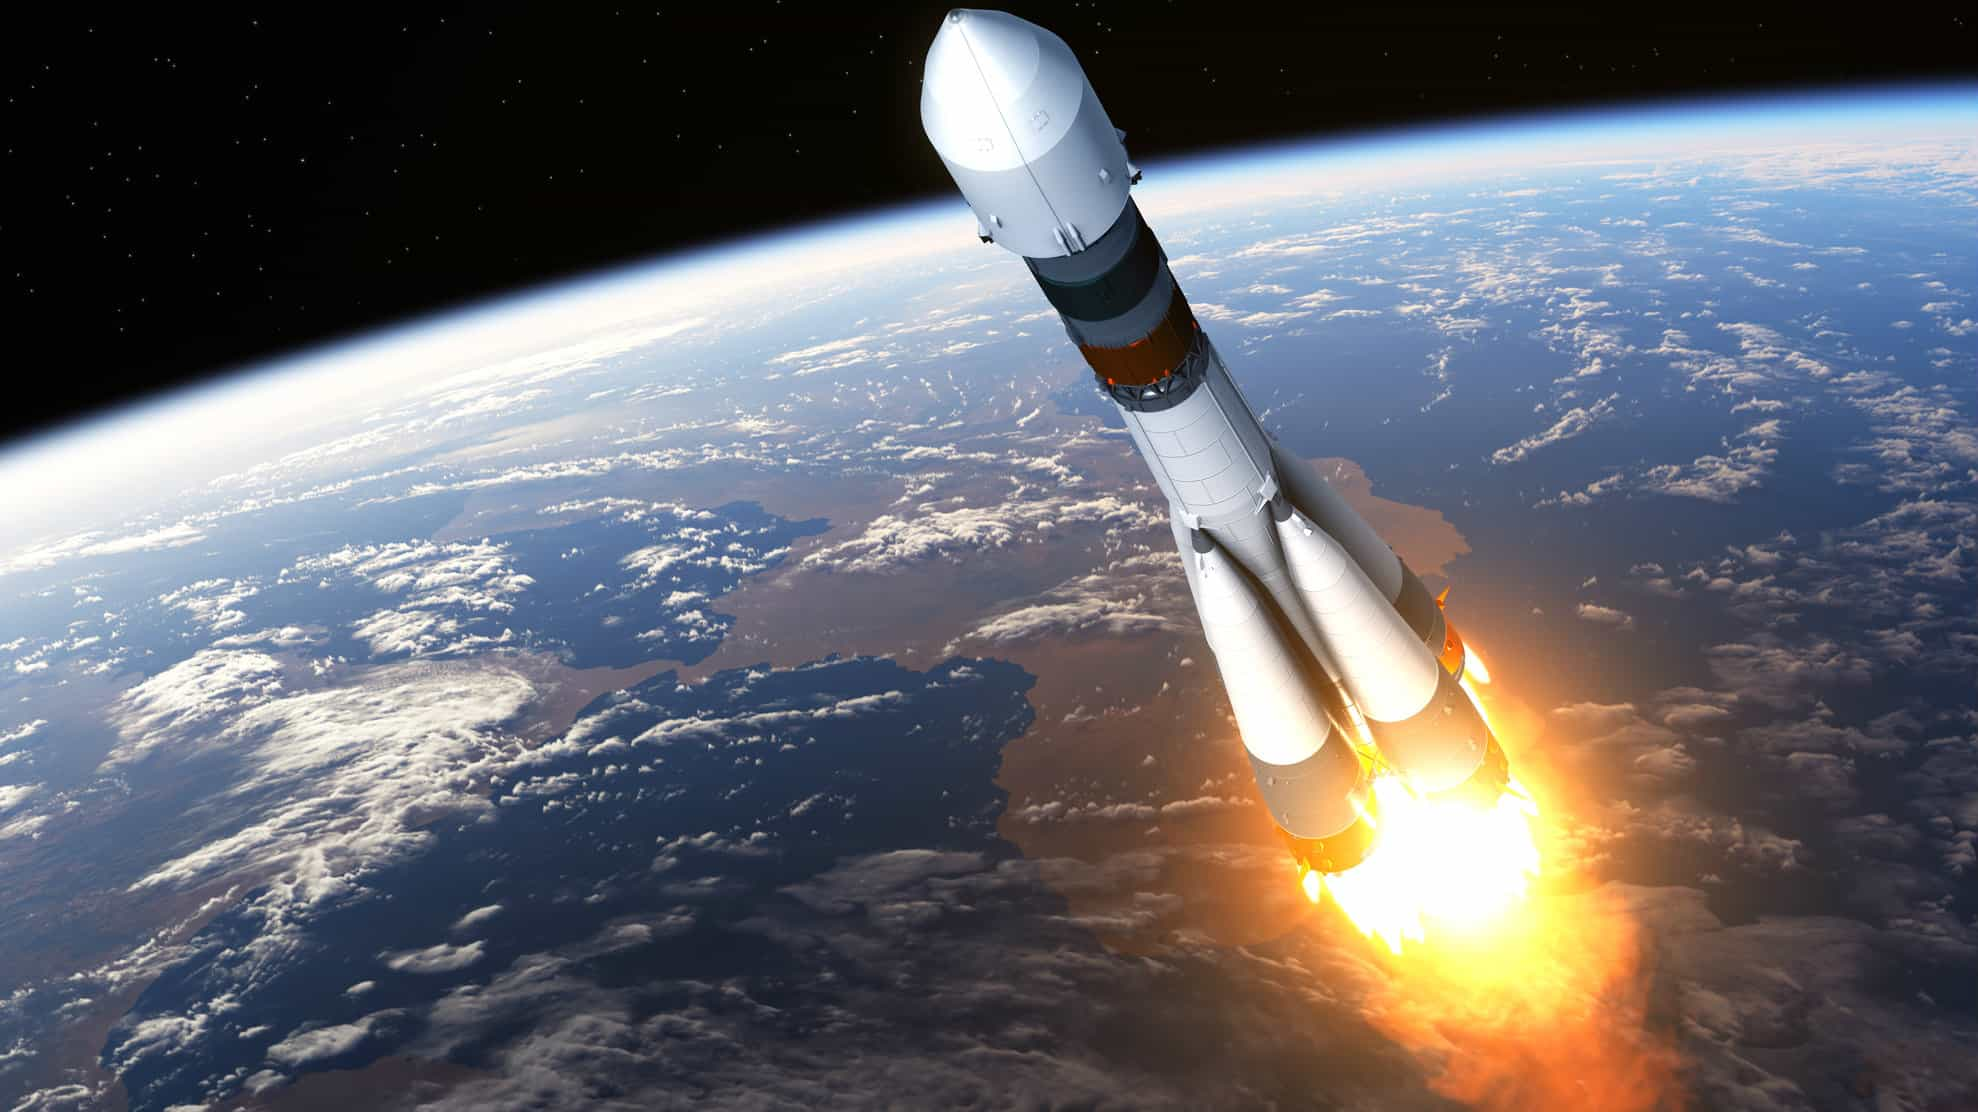 A rocket shoots up into space, indicating a surging share price movement on the ASX